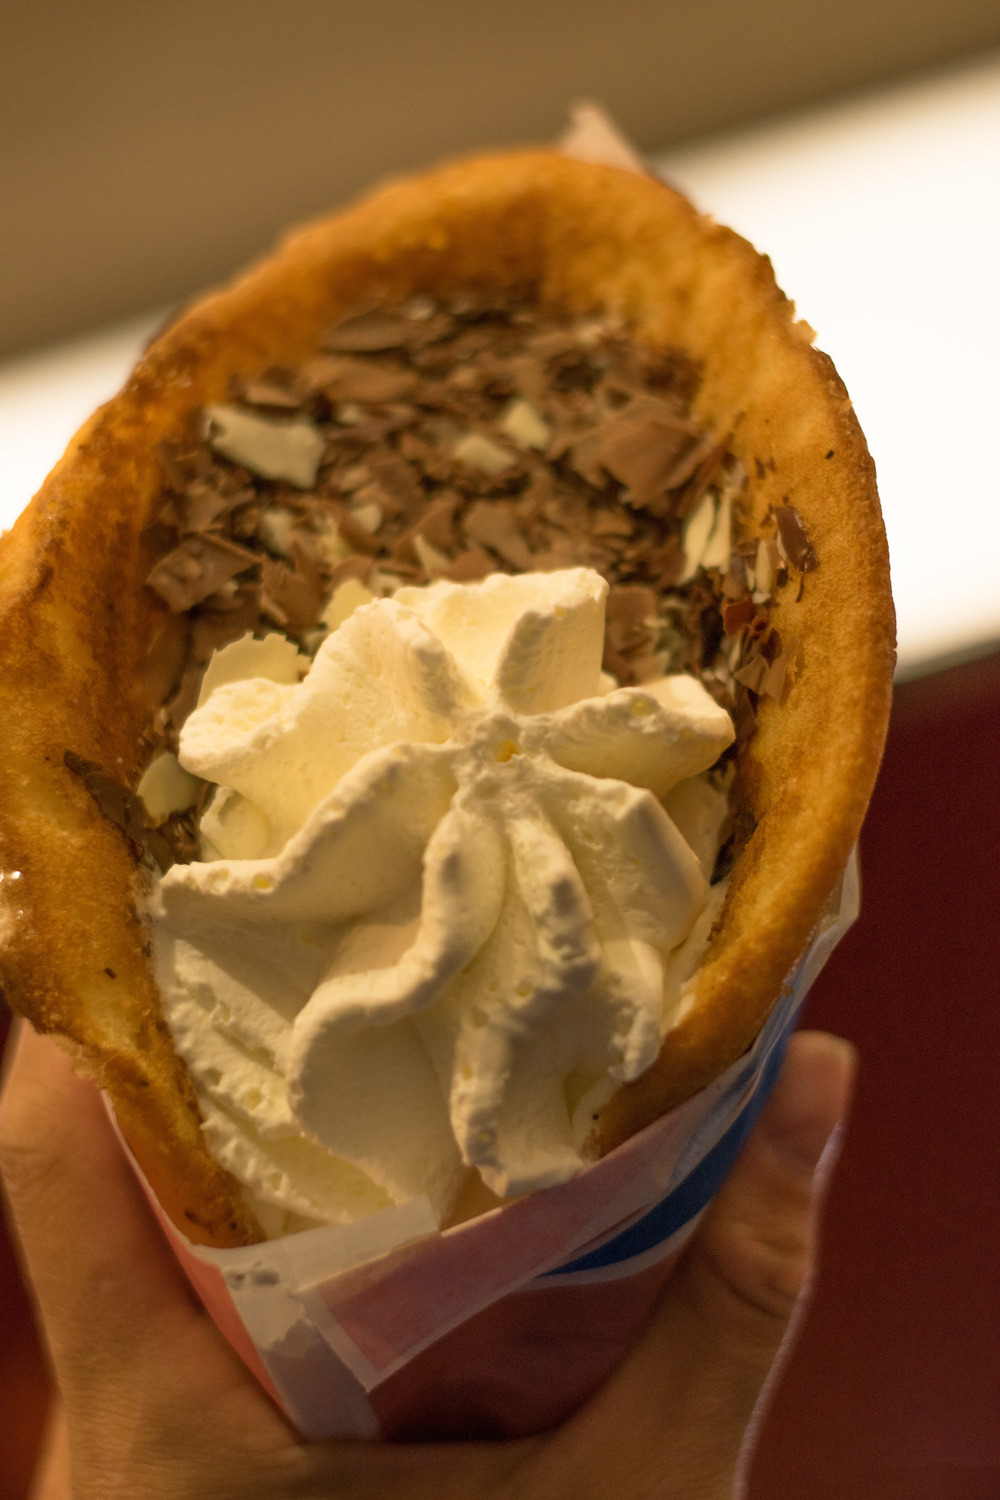 This is a waffle filled with choc - cut from a rotisserie (kebab style!)